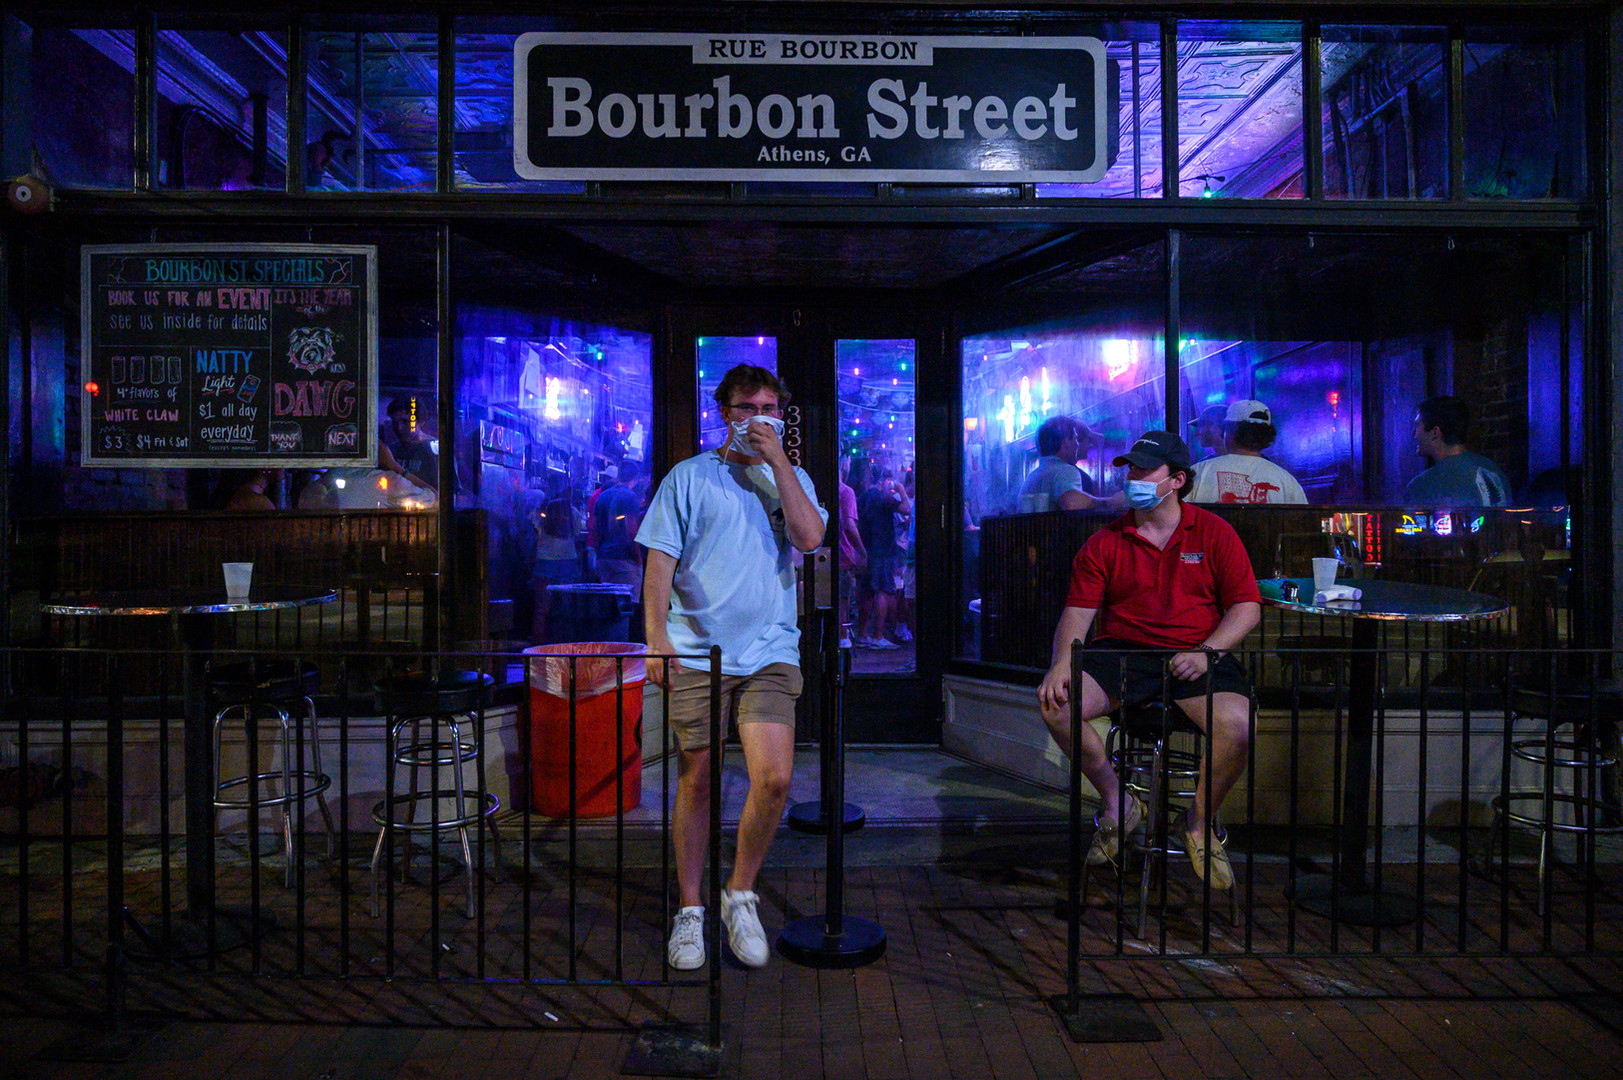 A man holds a mask over his face while exiting Bourbon Street in Athens, Georgia, on Tuesday, Aug. 19, 2020. Athens' bars are operating with new COVID-19 restrictions, included adjusted closing times, and residents have expressed concern about the increase in nightlife with the return of University of Georgia students for the fall semester.